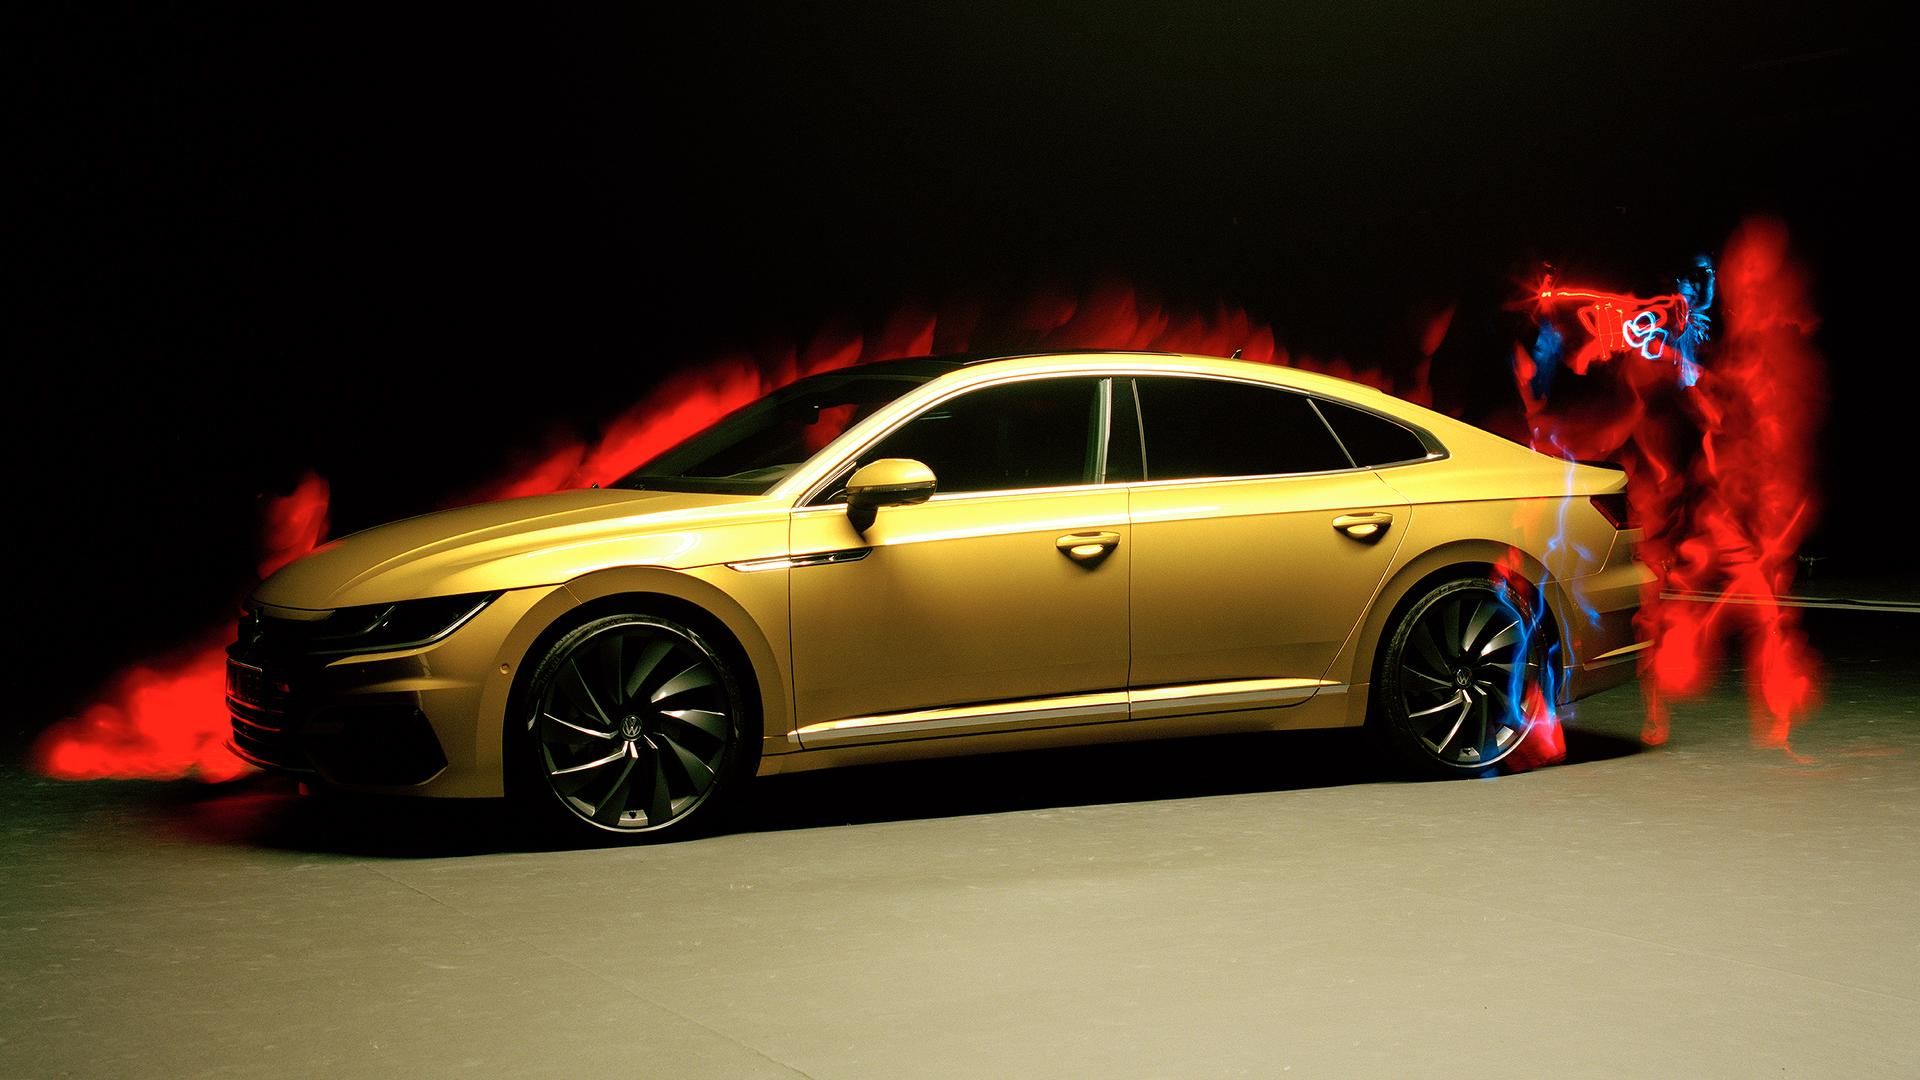 VW Arteon Shot By Blind Photographer 1920x1080